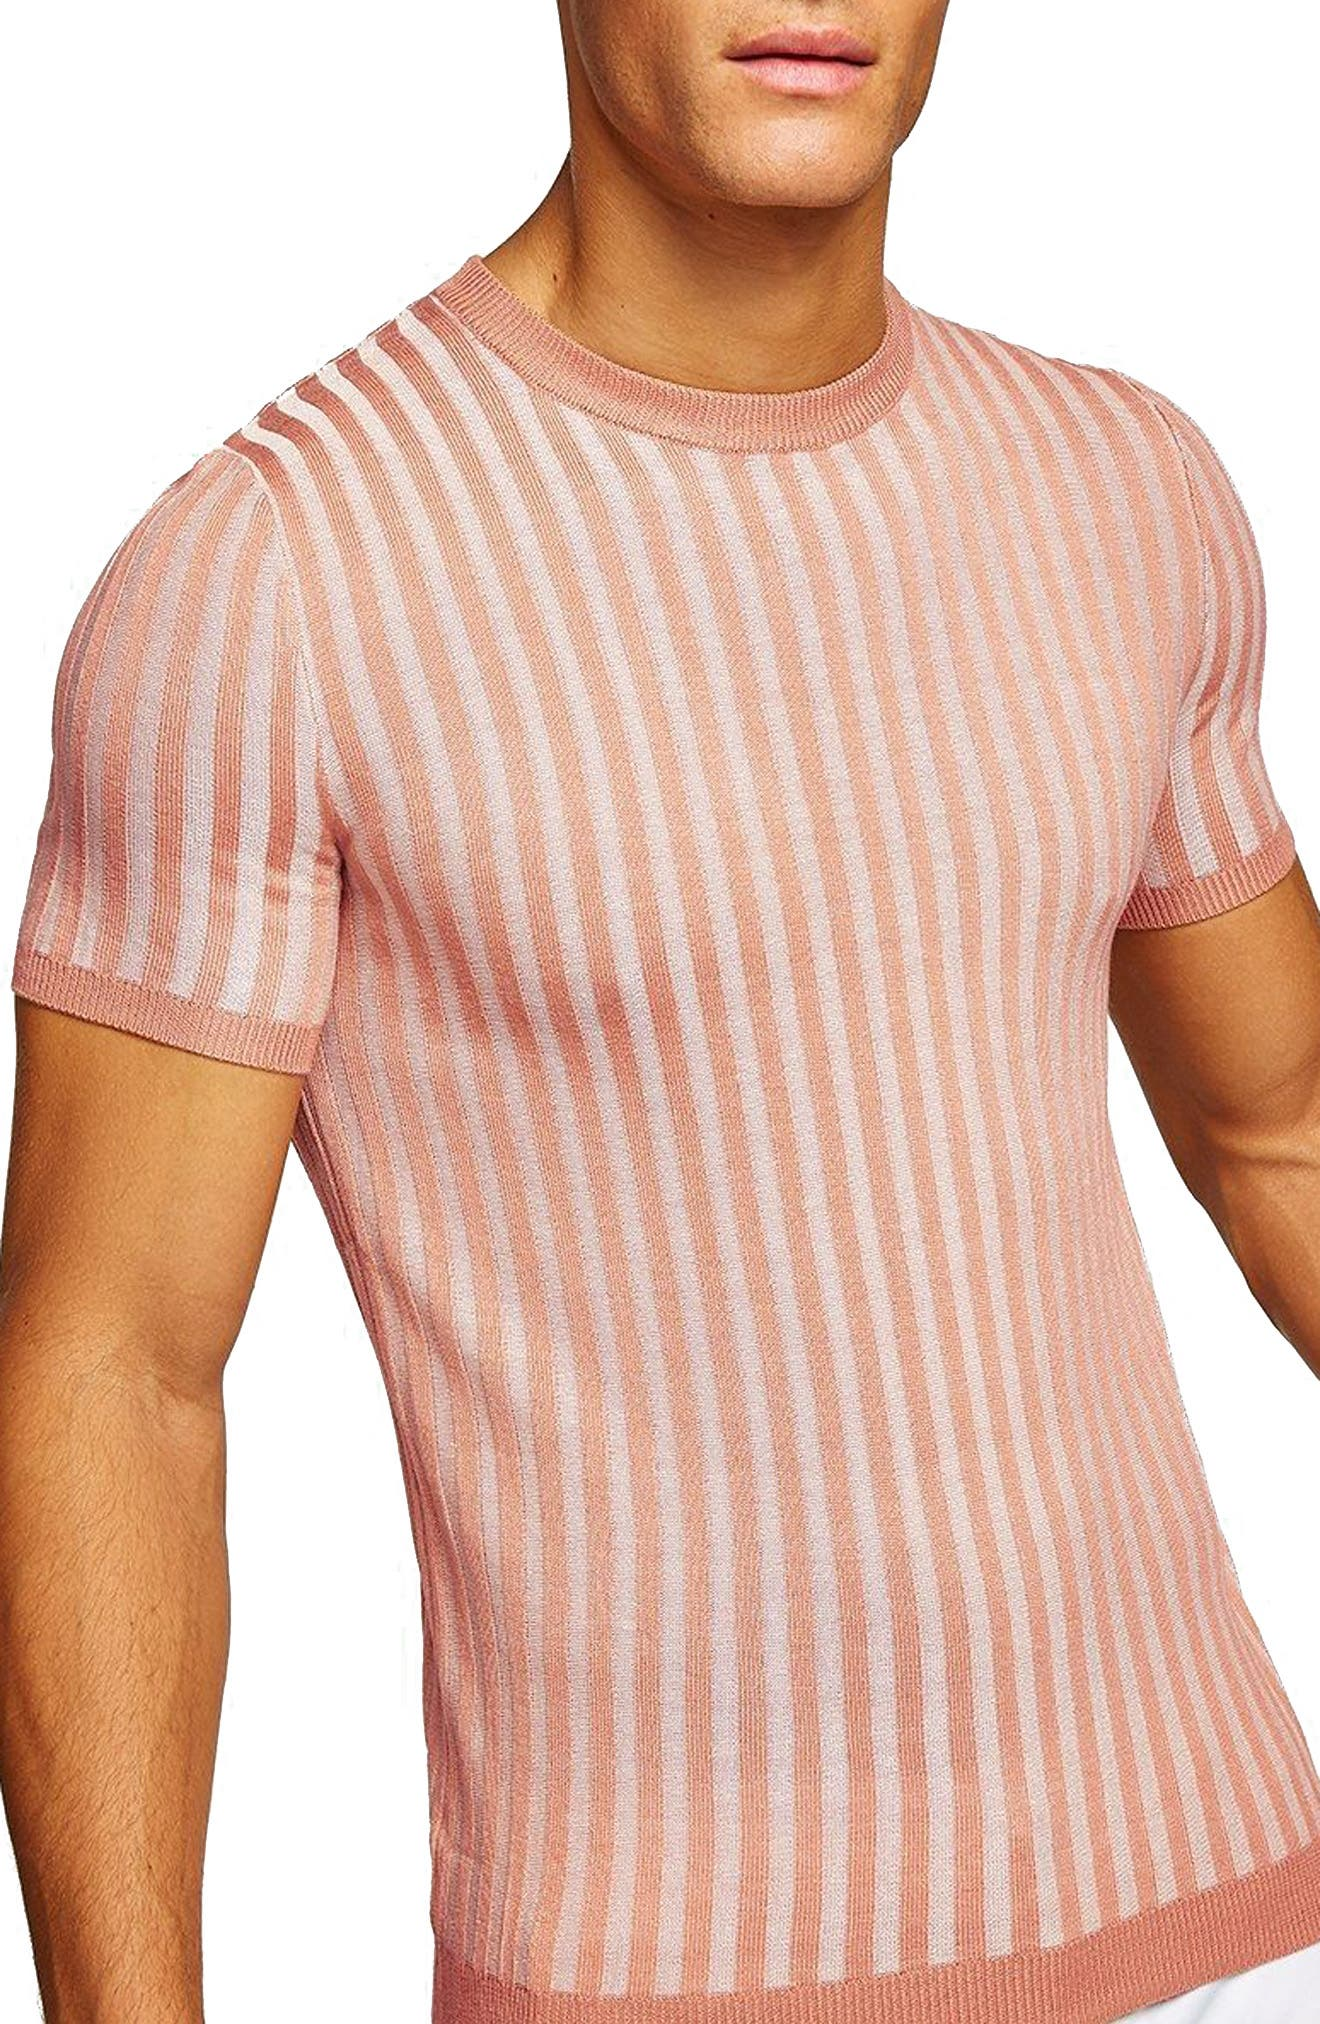 Muscle Fit Ribbed T-Shirt,                         Main,                         color, Pink